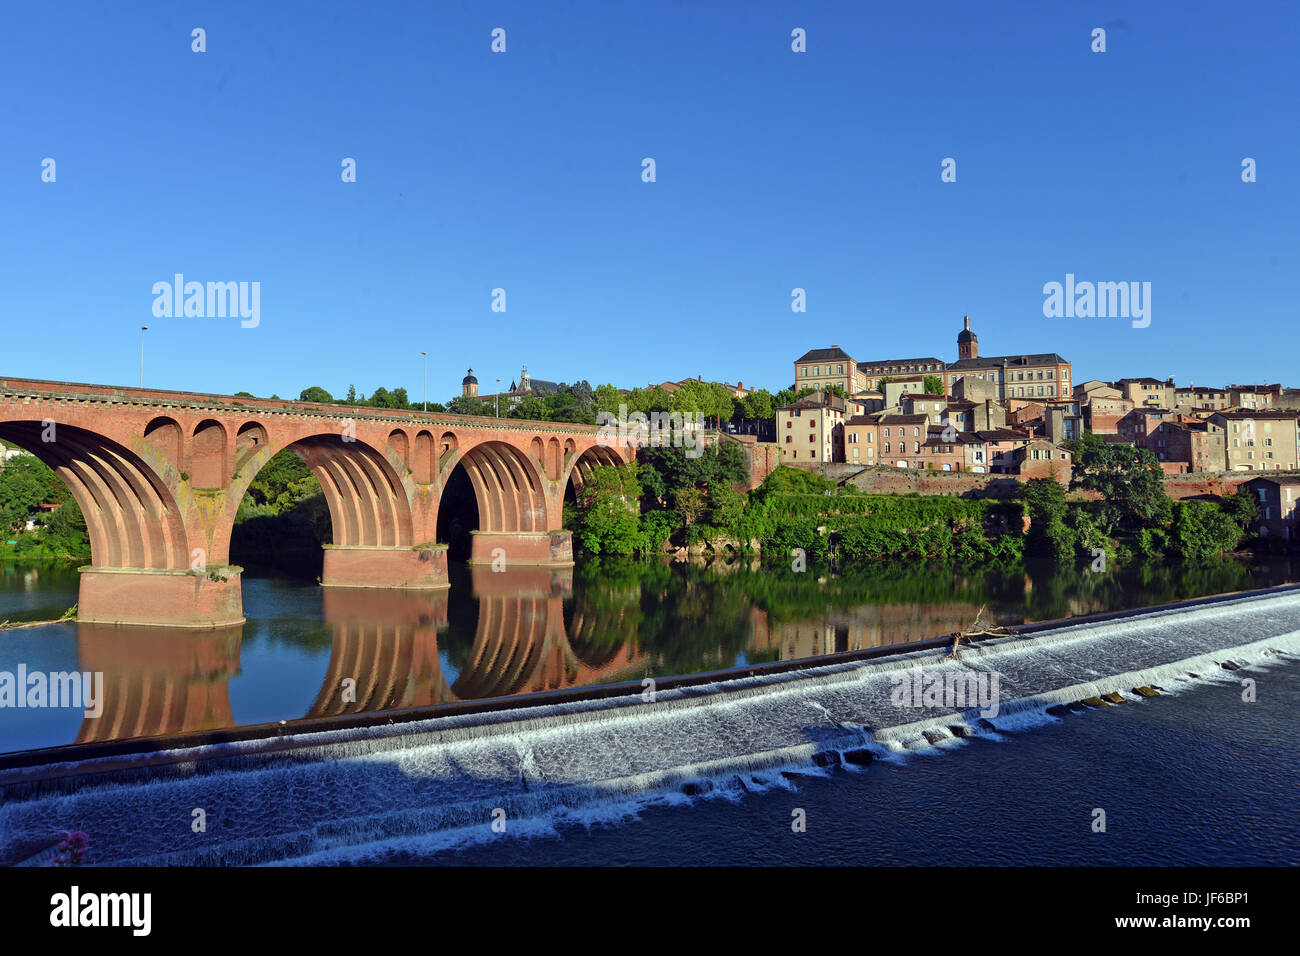 Tarn river and the old town of Albi, Tarn, Occitanie, France - Stock Image